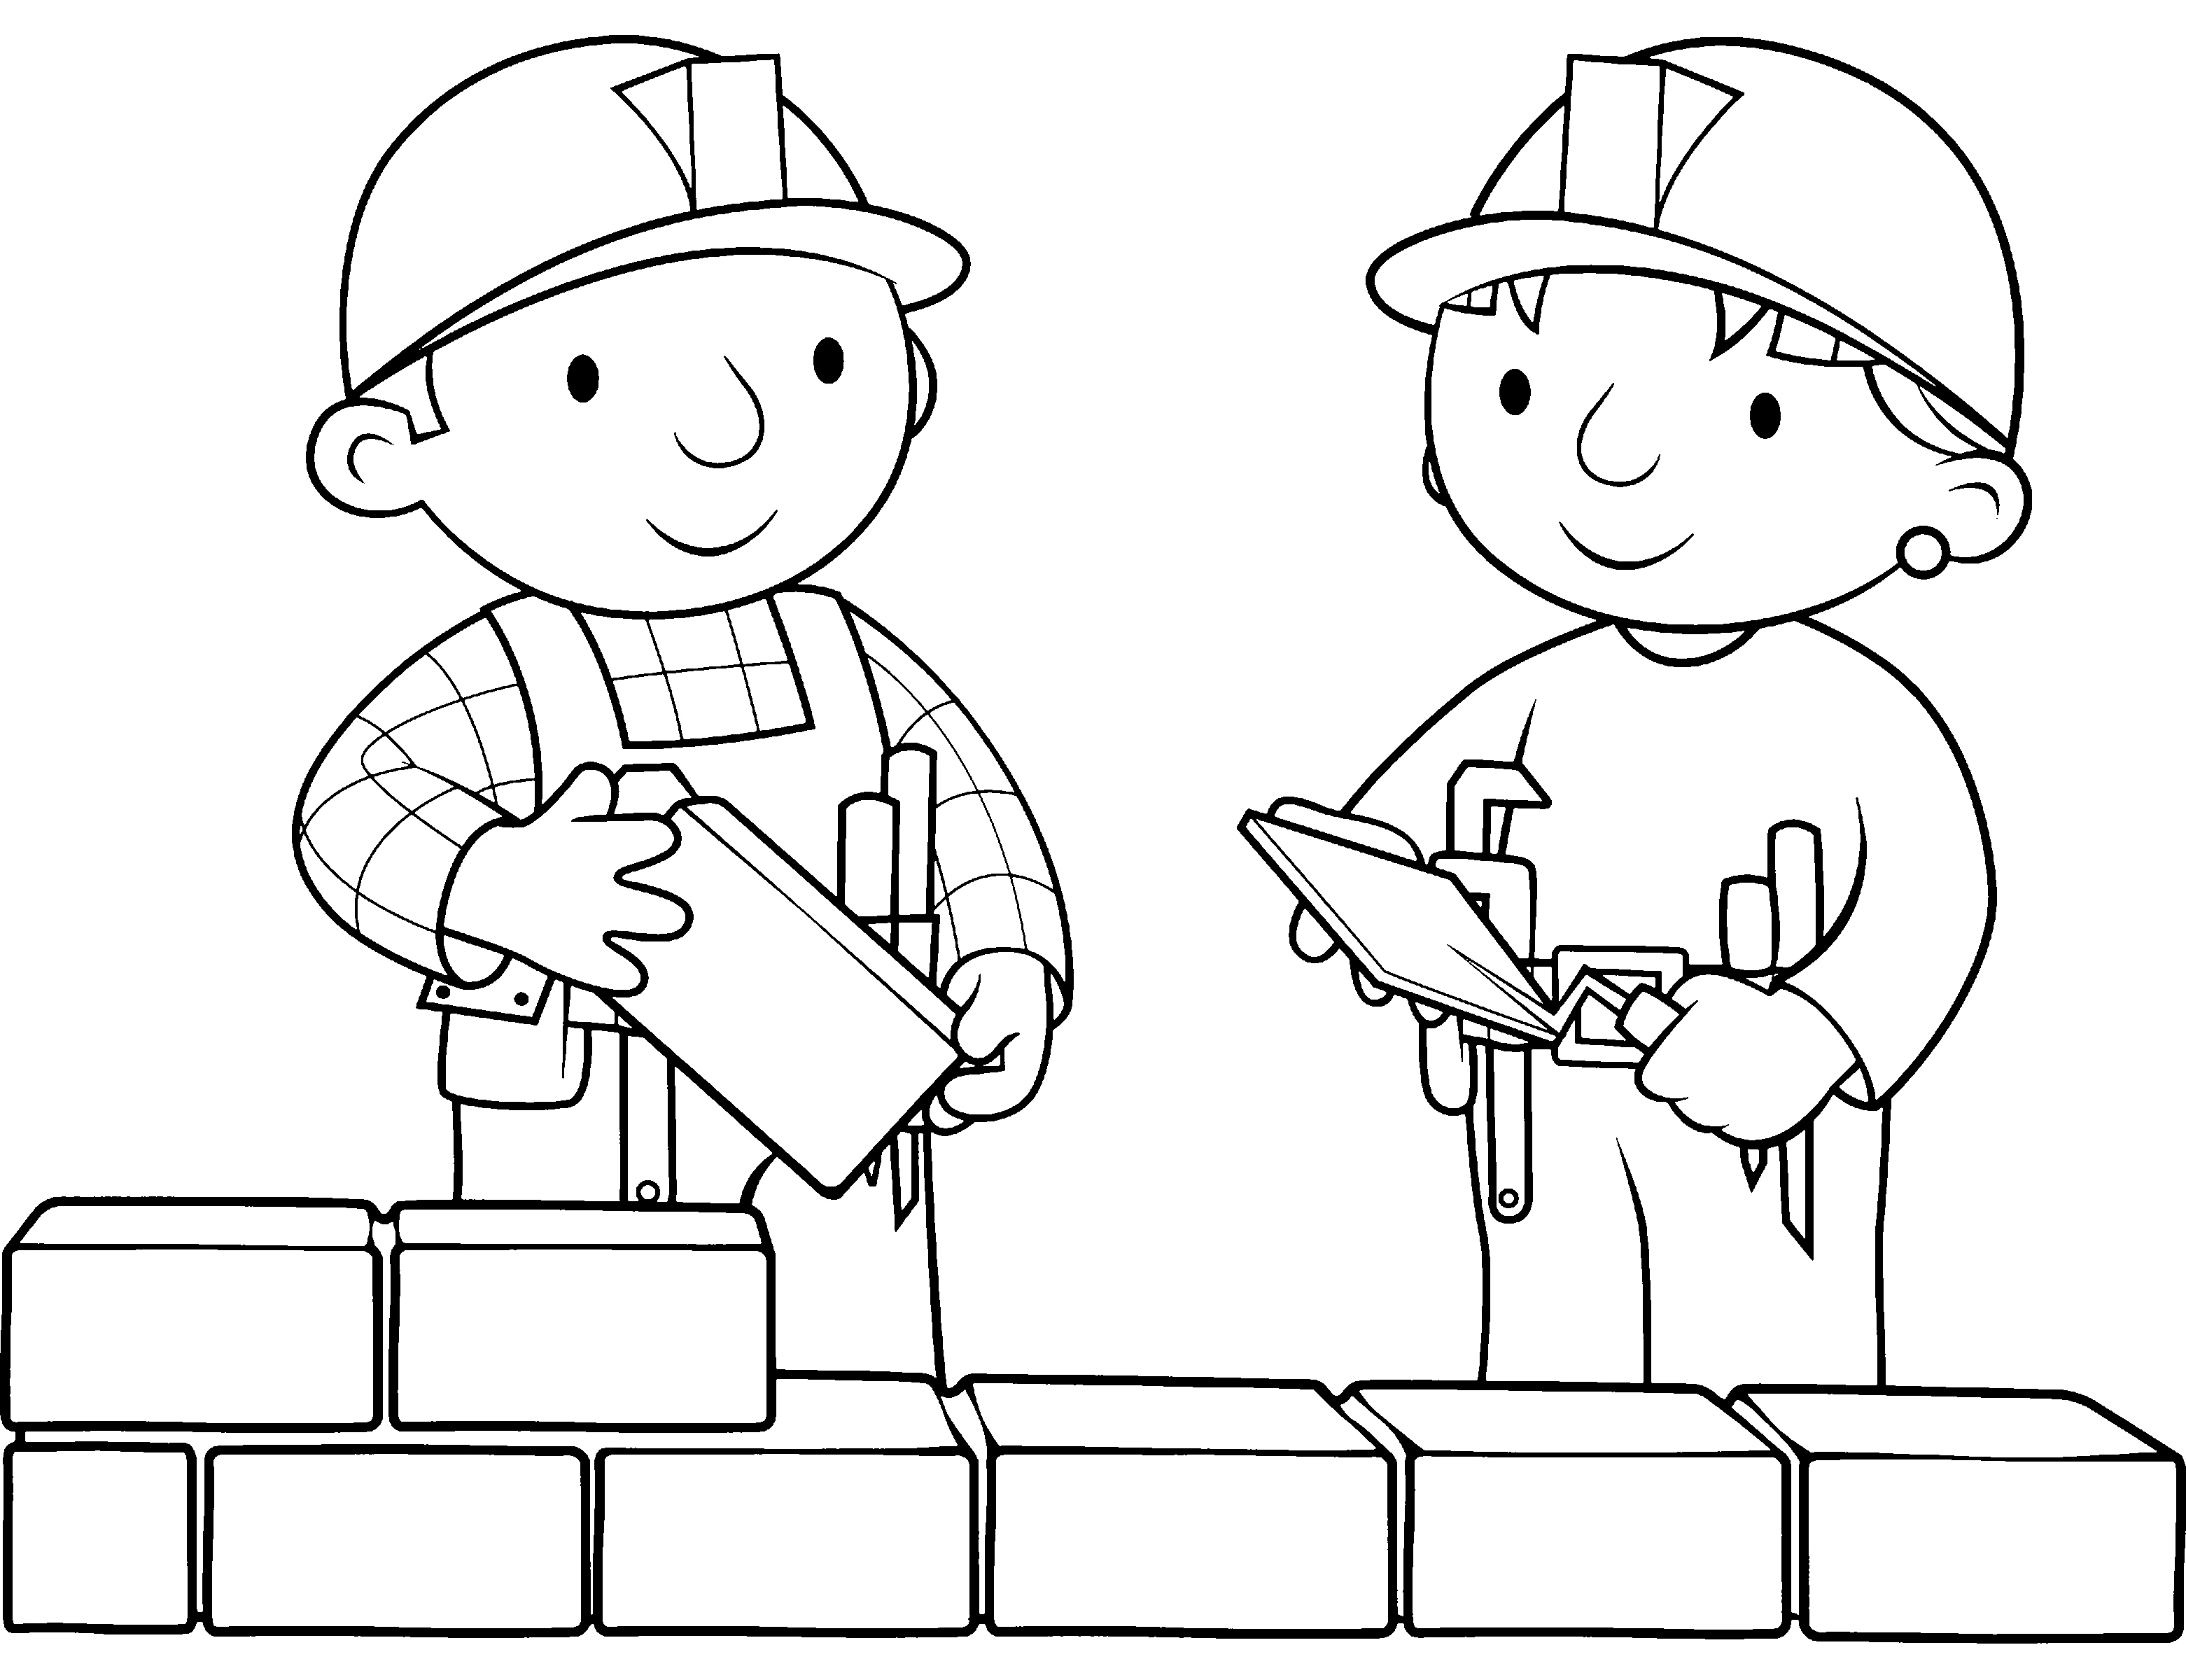 bob the builder coloring pages - 5 best images of bricks coloring sheets printable brick